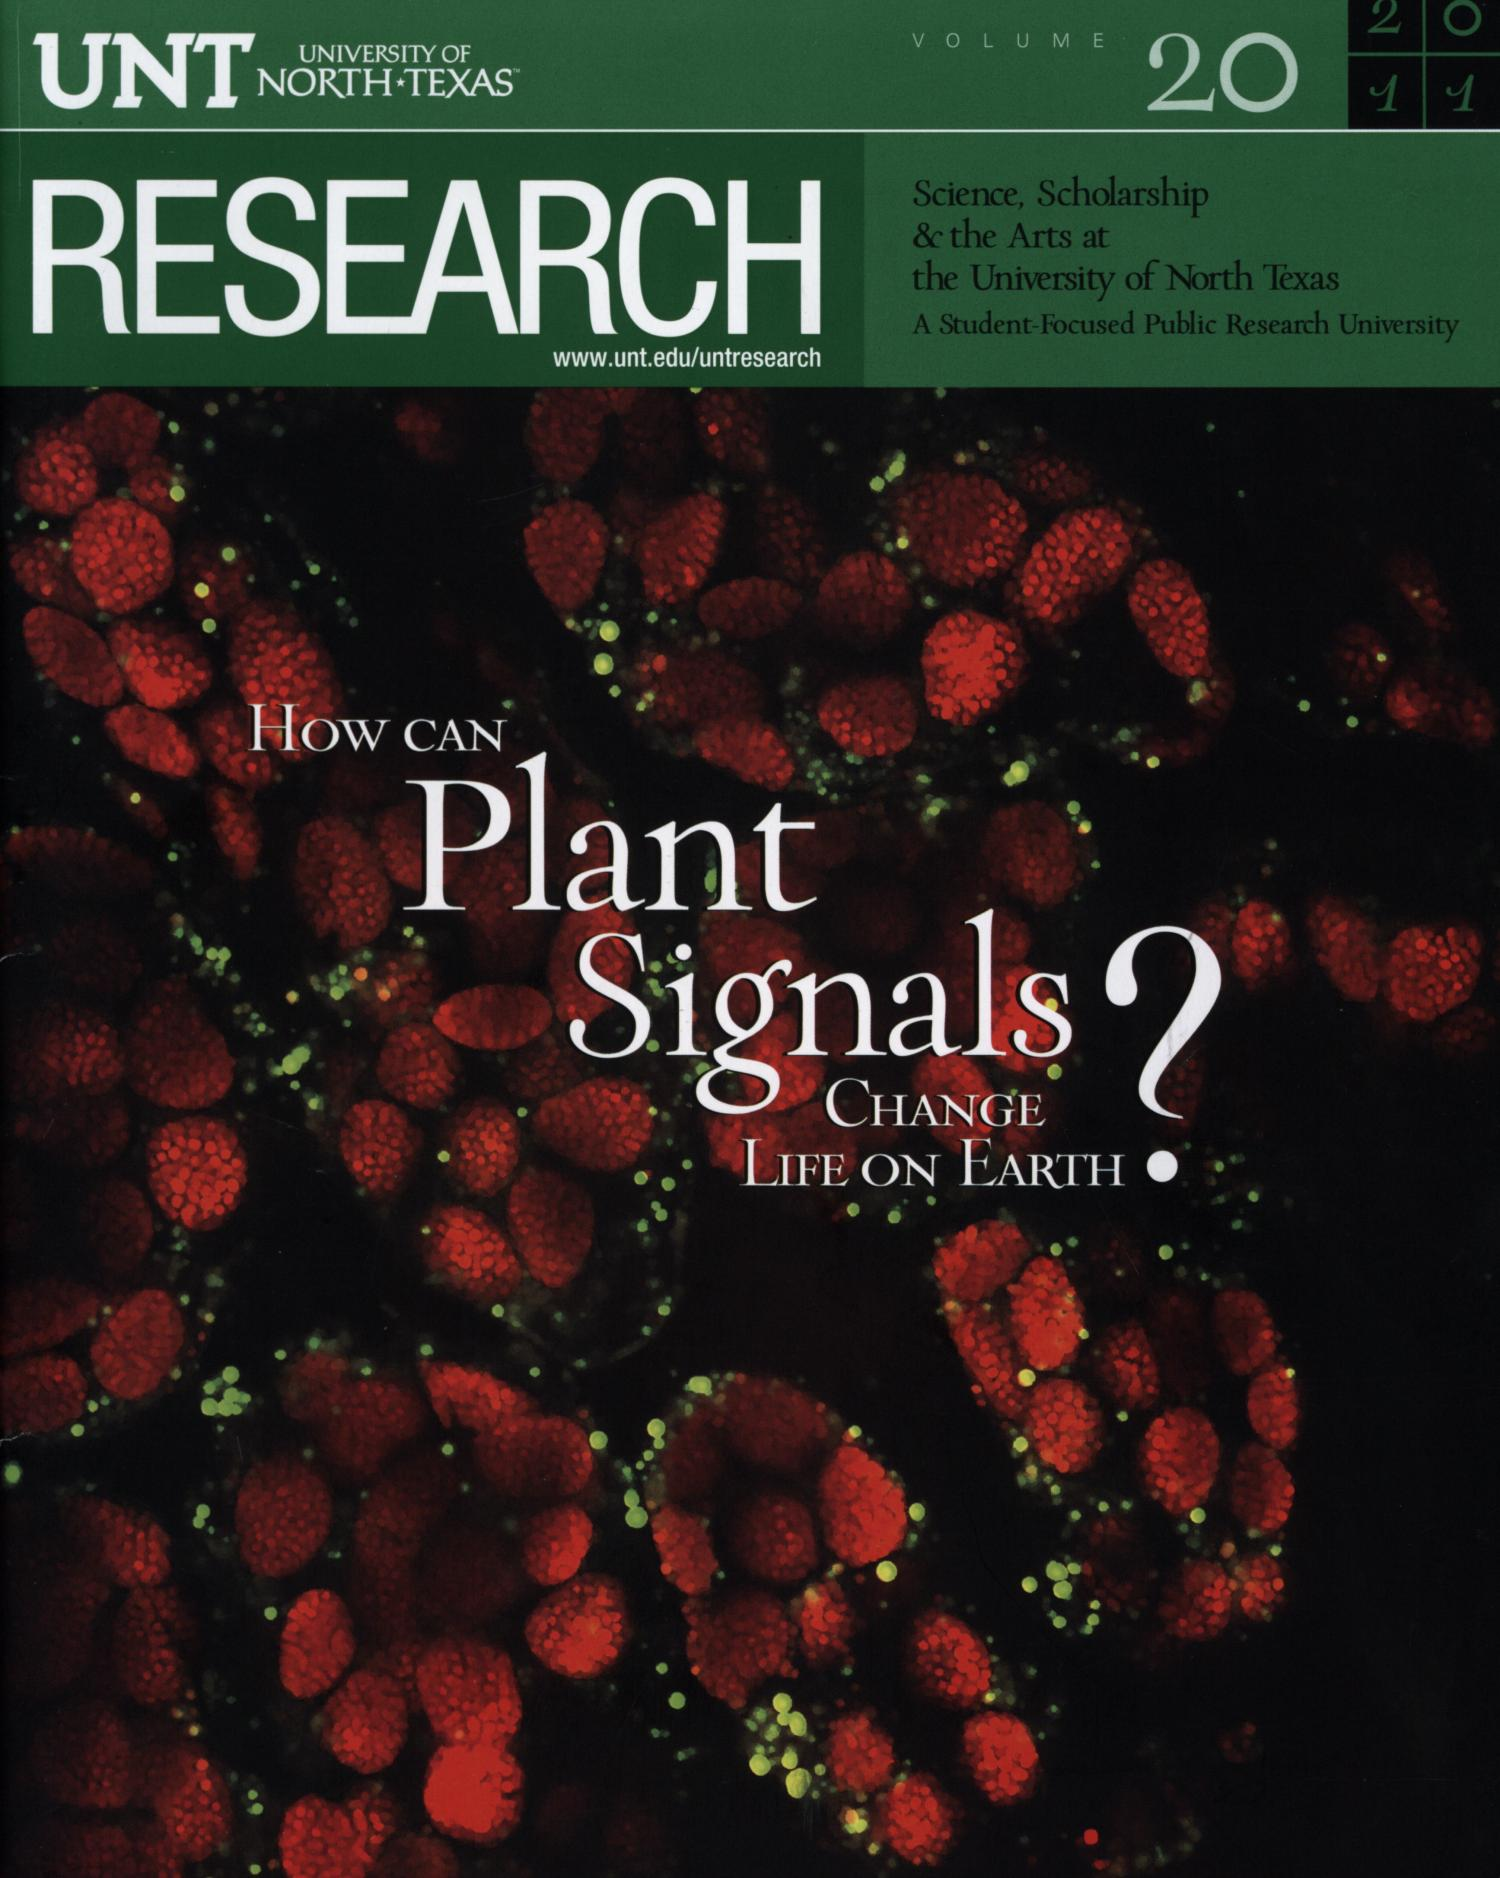 UNT Research, Volume 20, 2011                                                                                                      Front Cover